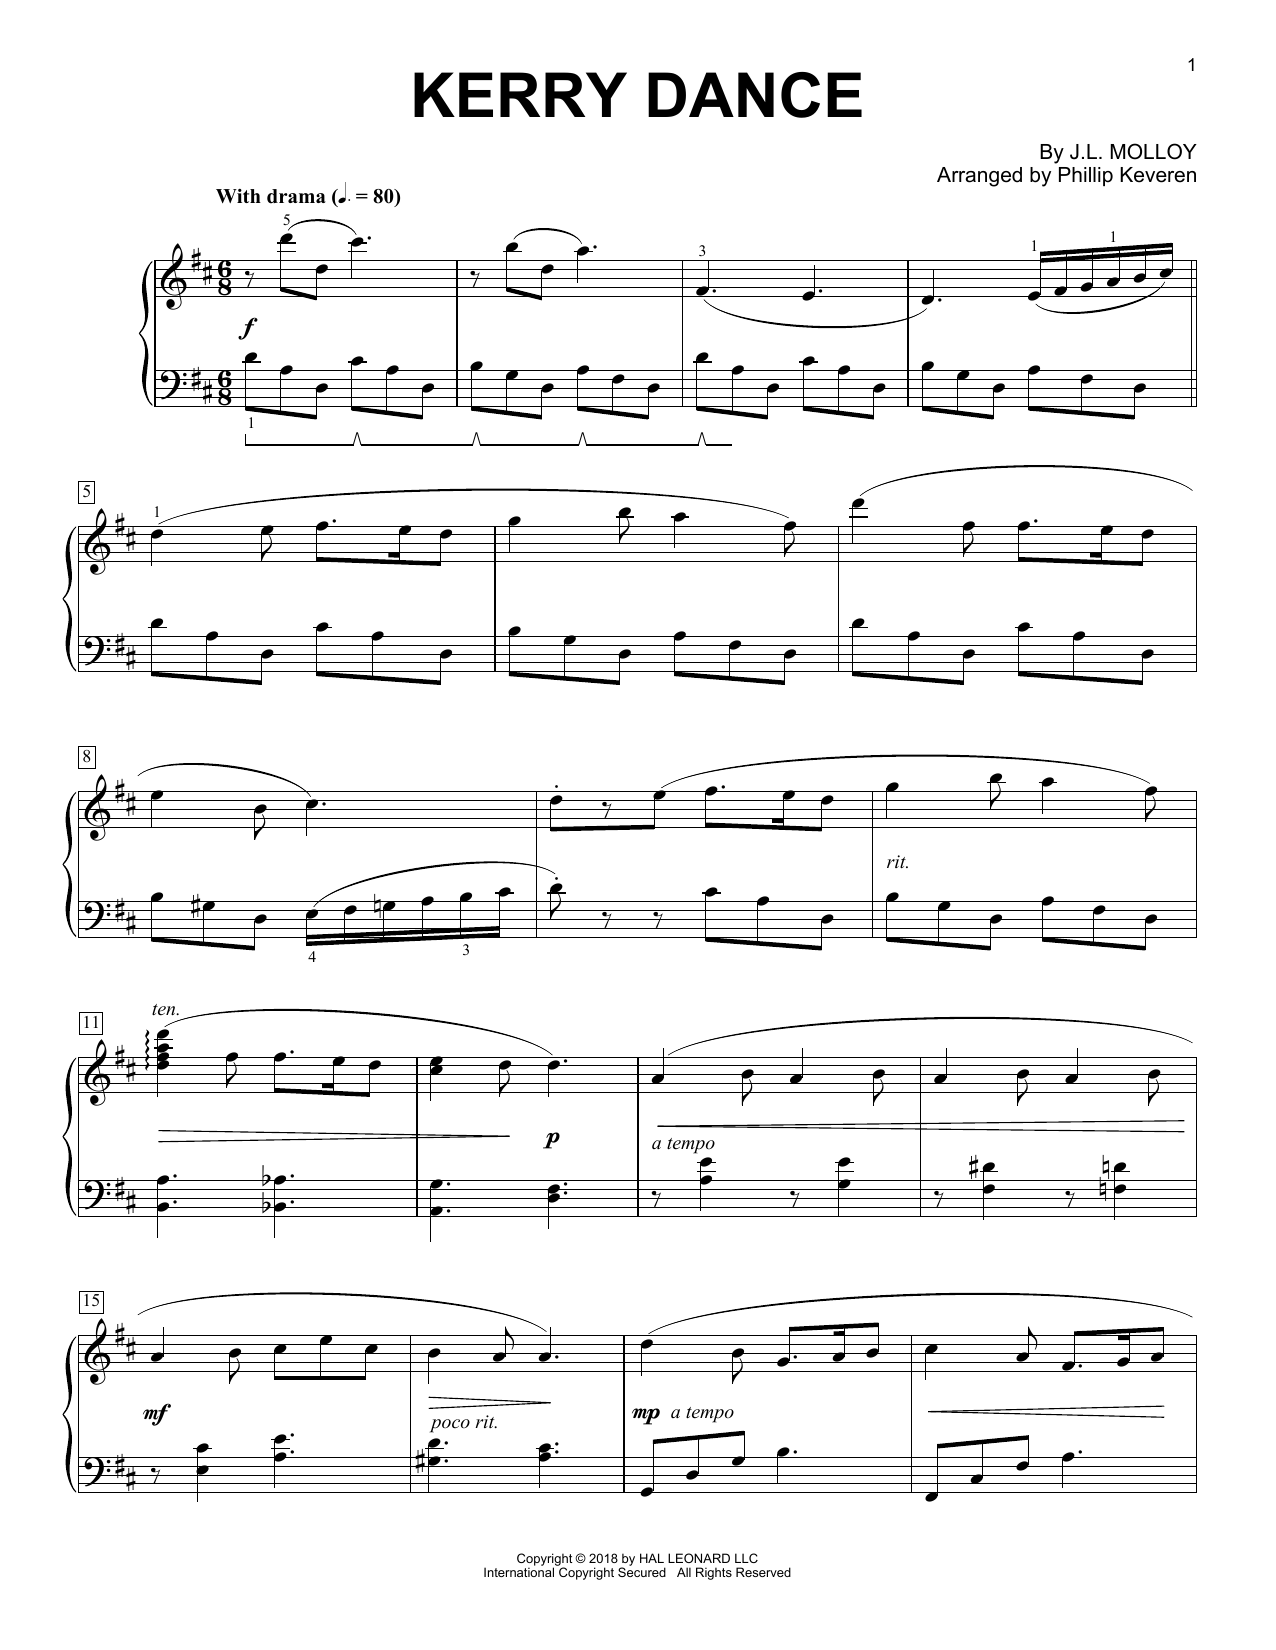 Download J.L. Molloy 'Kerry Dance (arr. Phillip Keveren)' Digital Sheet Music Notes & Chords and start playing in minutes